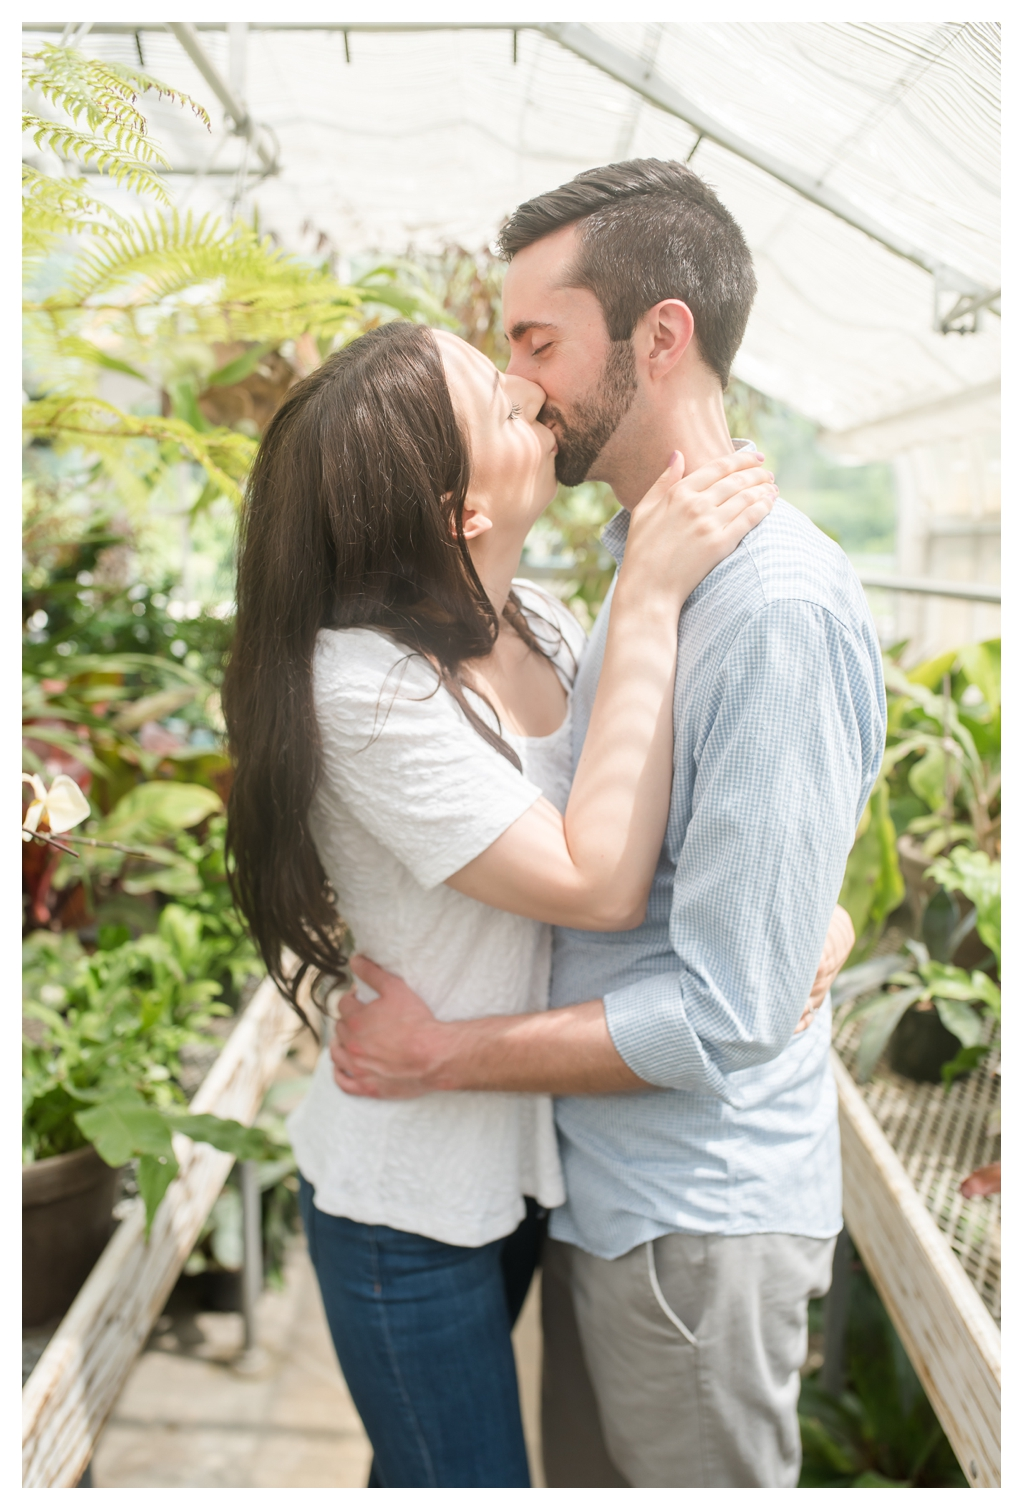 Lily House and Gardens Engagement Session_0825.jpg